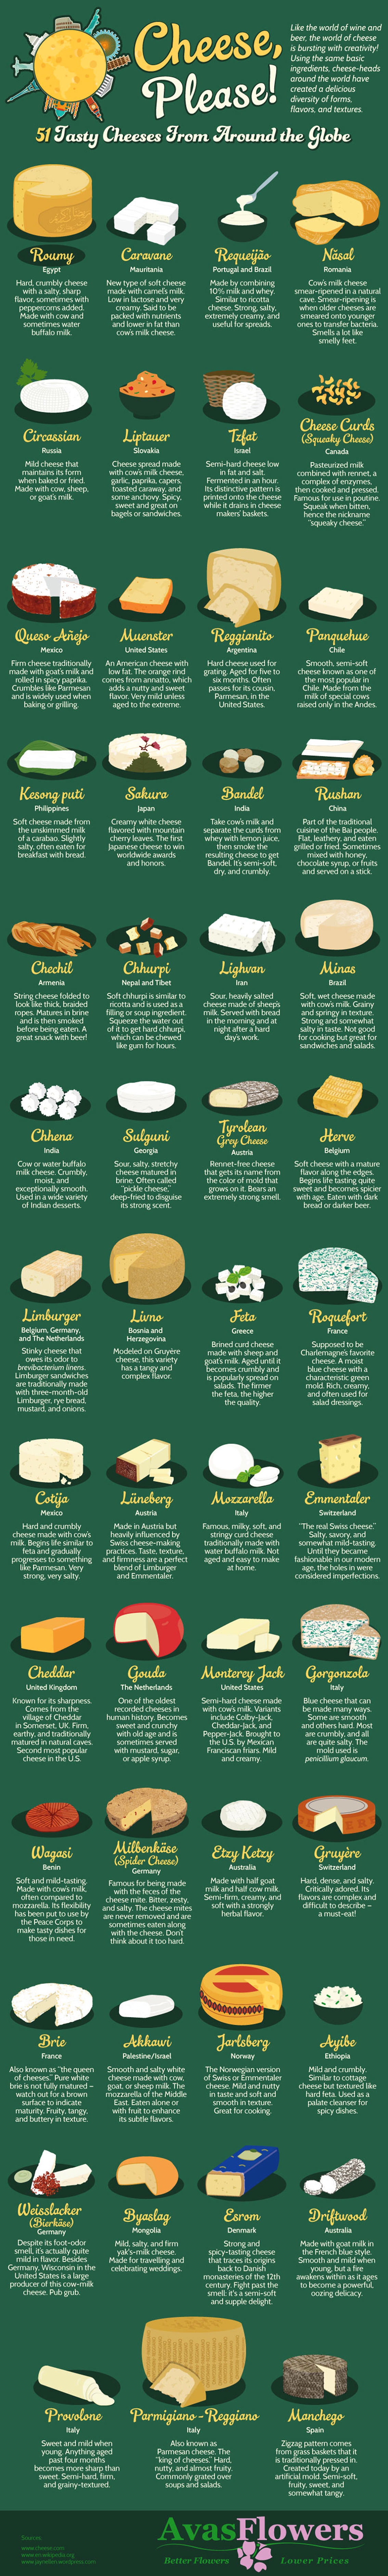 51 Tasty Cheeses from Around the World Infographic